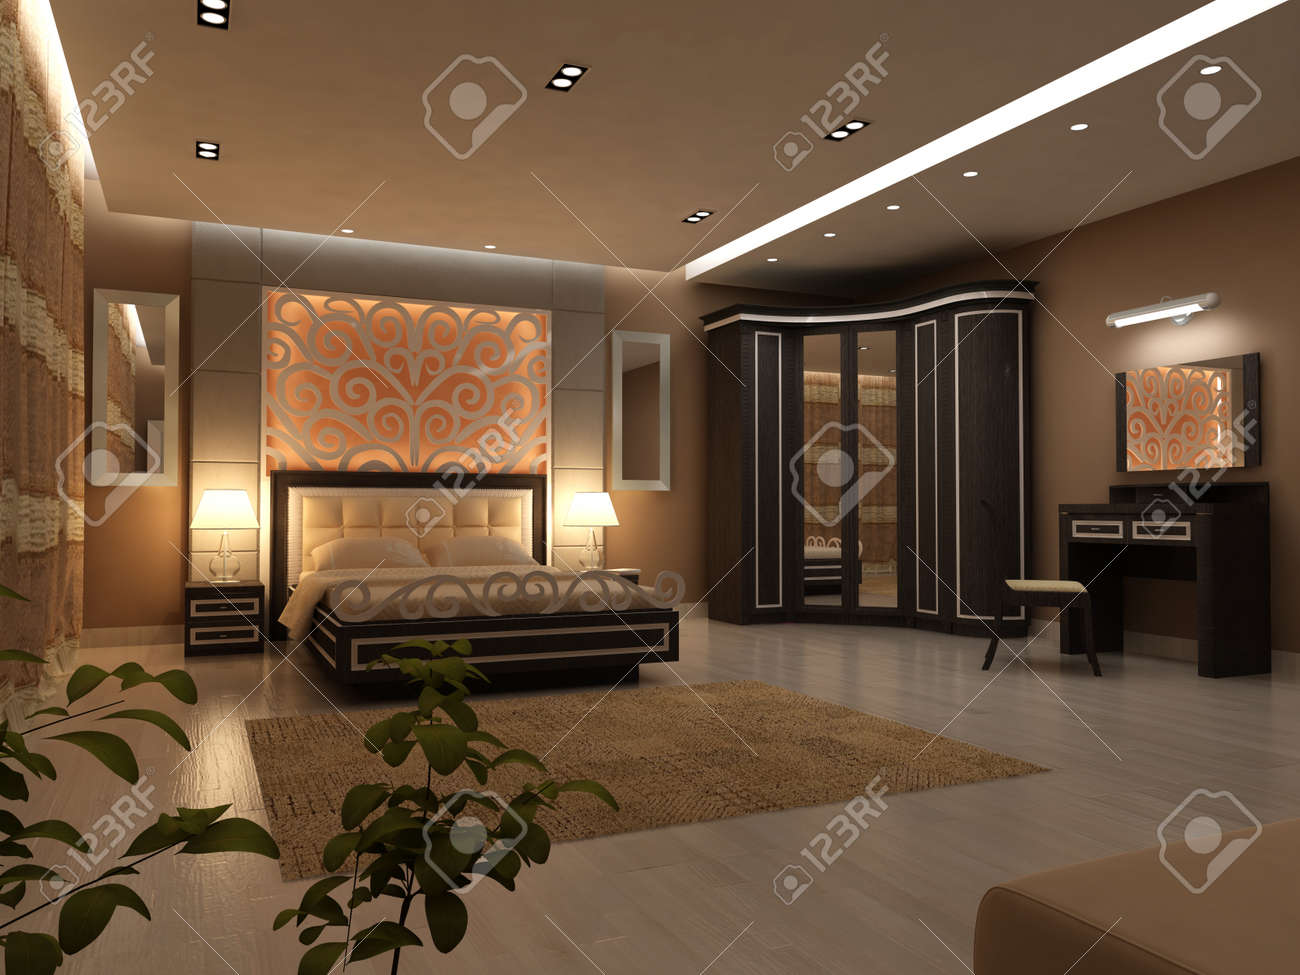 Interior design of big modern Bedroom in artificial lighting Stock Photo -  37388904